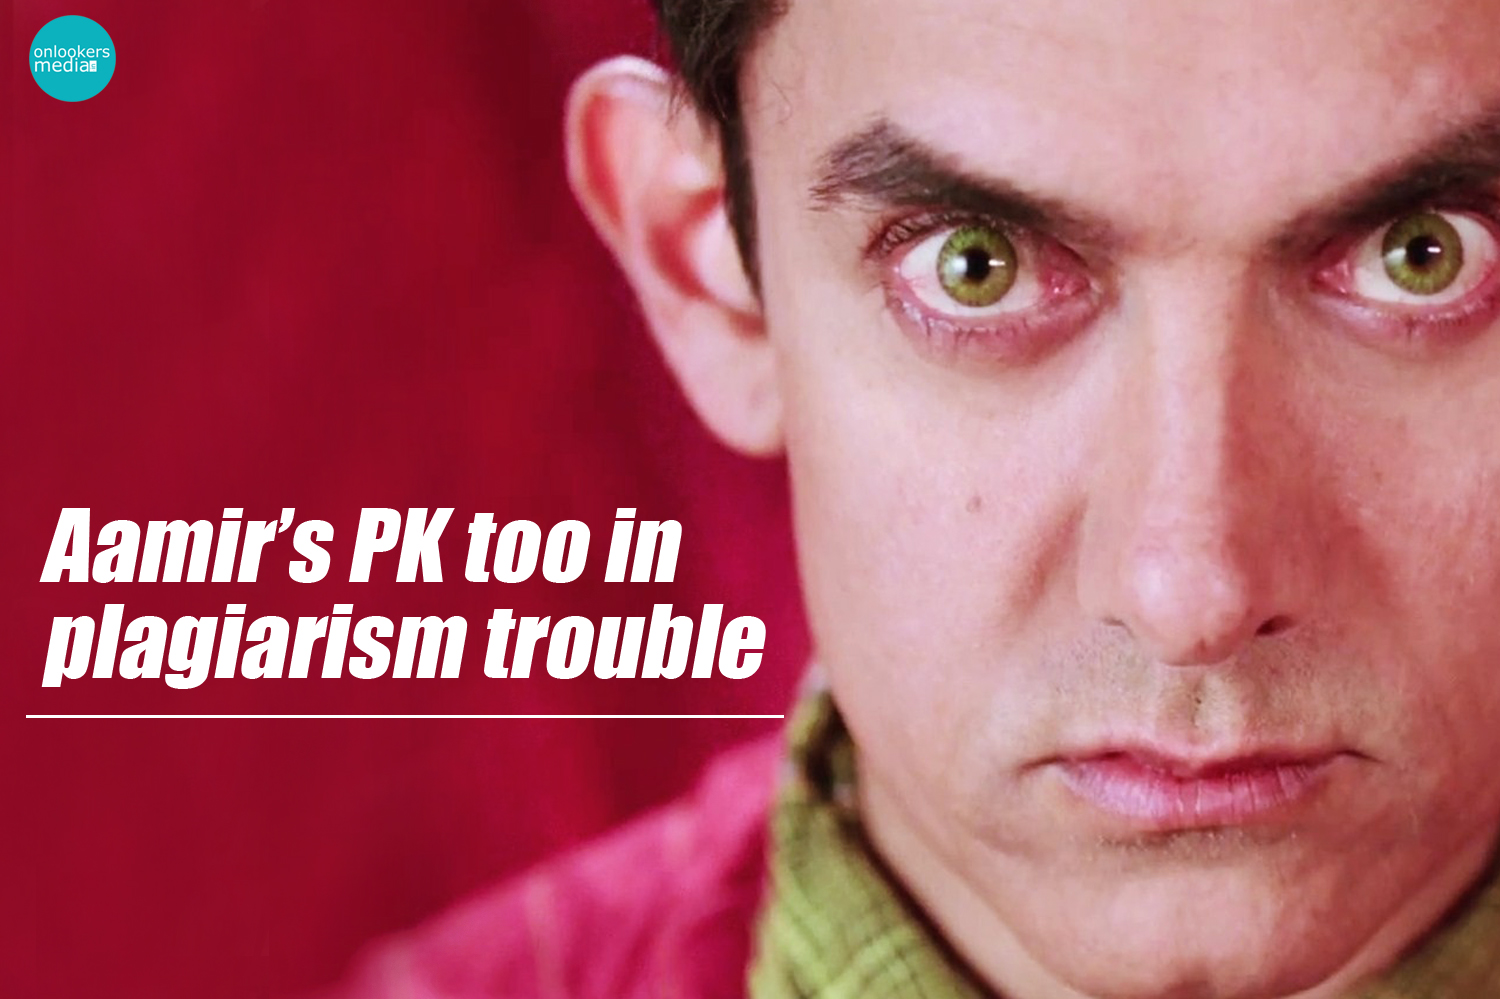 PK too in plagiarism trouble-Aamir Khan-Rajkumar Hirani-Anushka Sharma-Onlookers Media